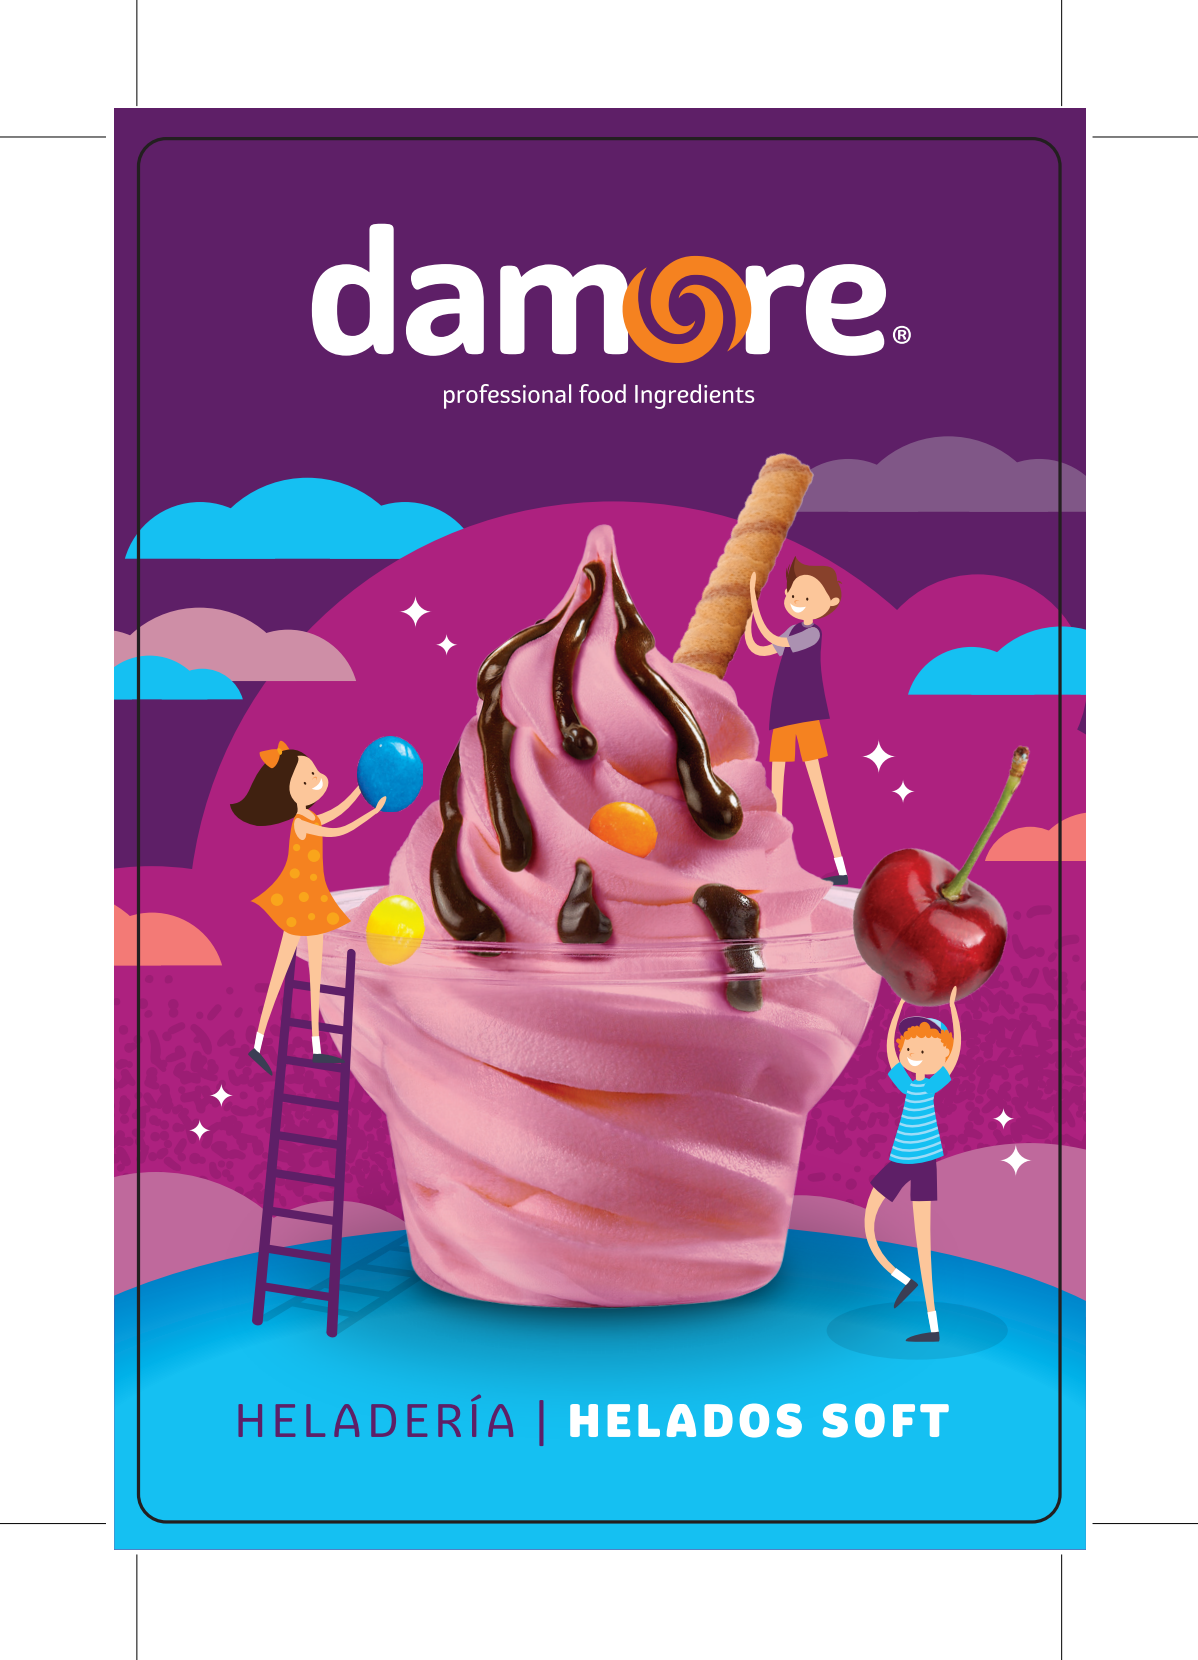 DAMORE Food Ingredients - Product Label